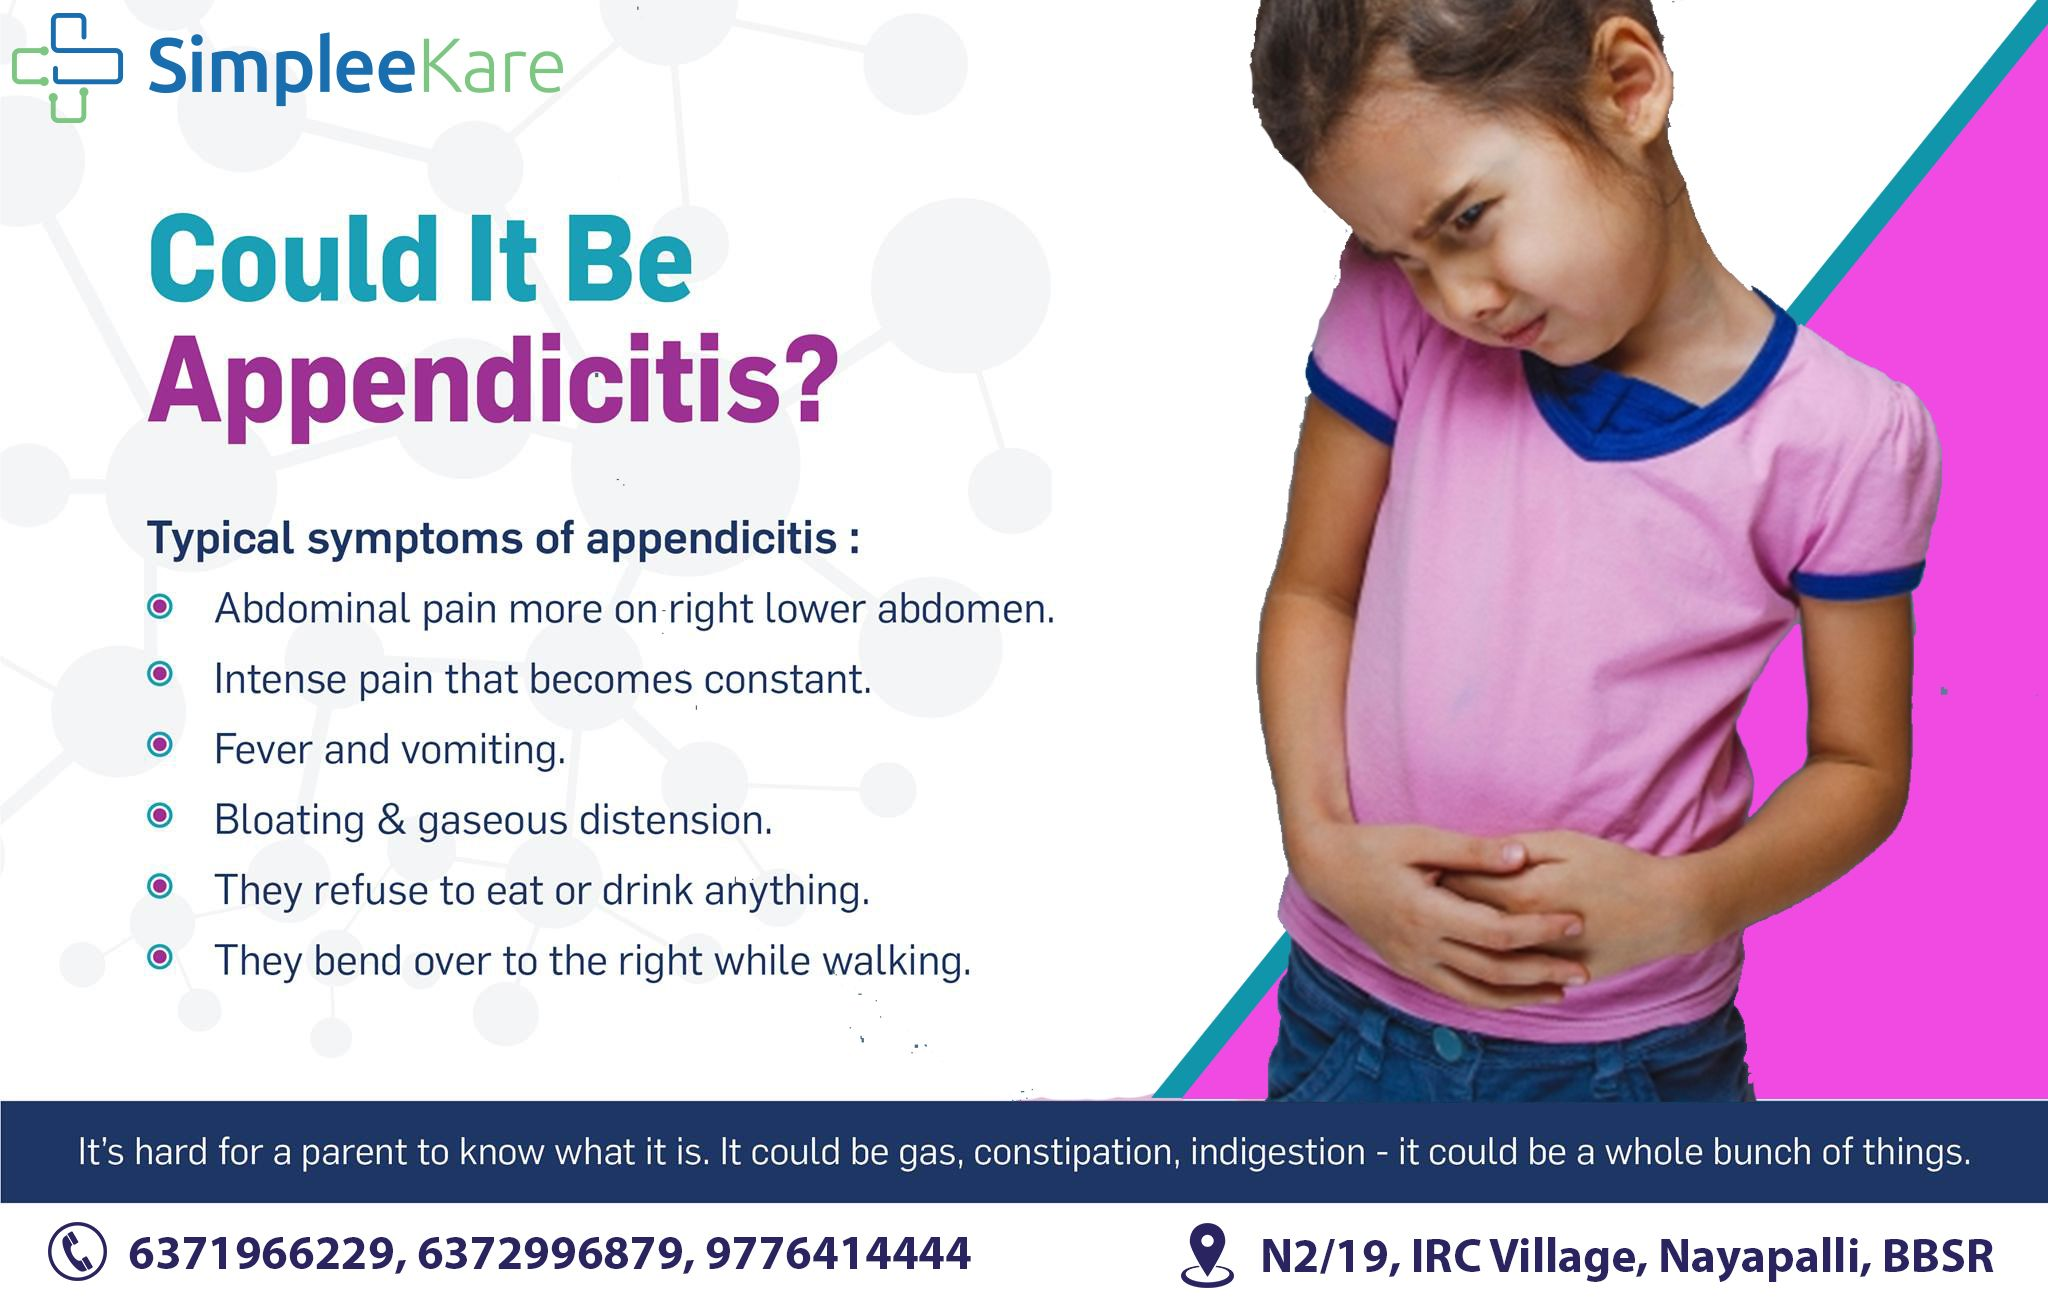 he symptoms of appendicitis can be very different in